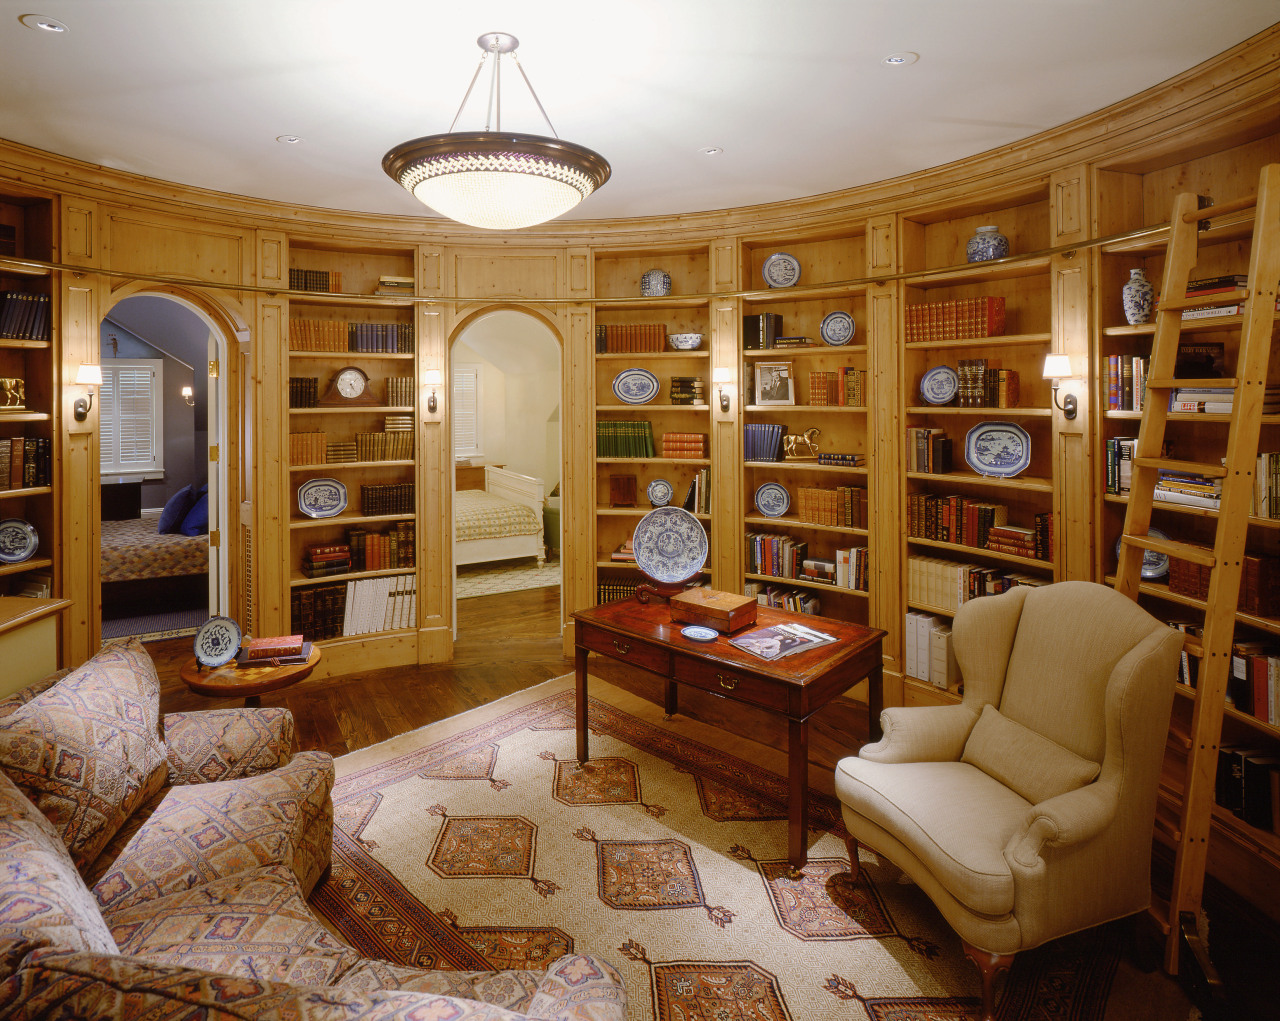 A view of the library featuring timber shelving, bookcase, ceiling, estate, furniture, home, interior design, library, living room, property, real estate, brown